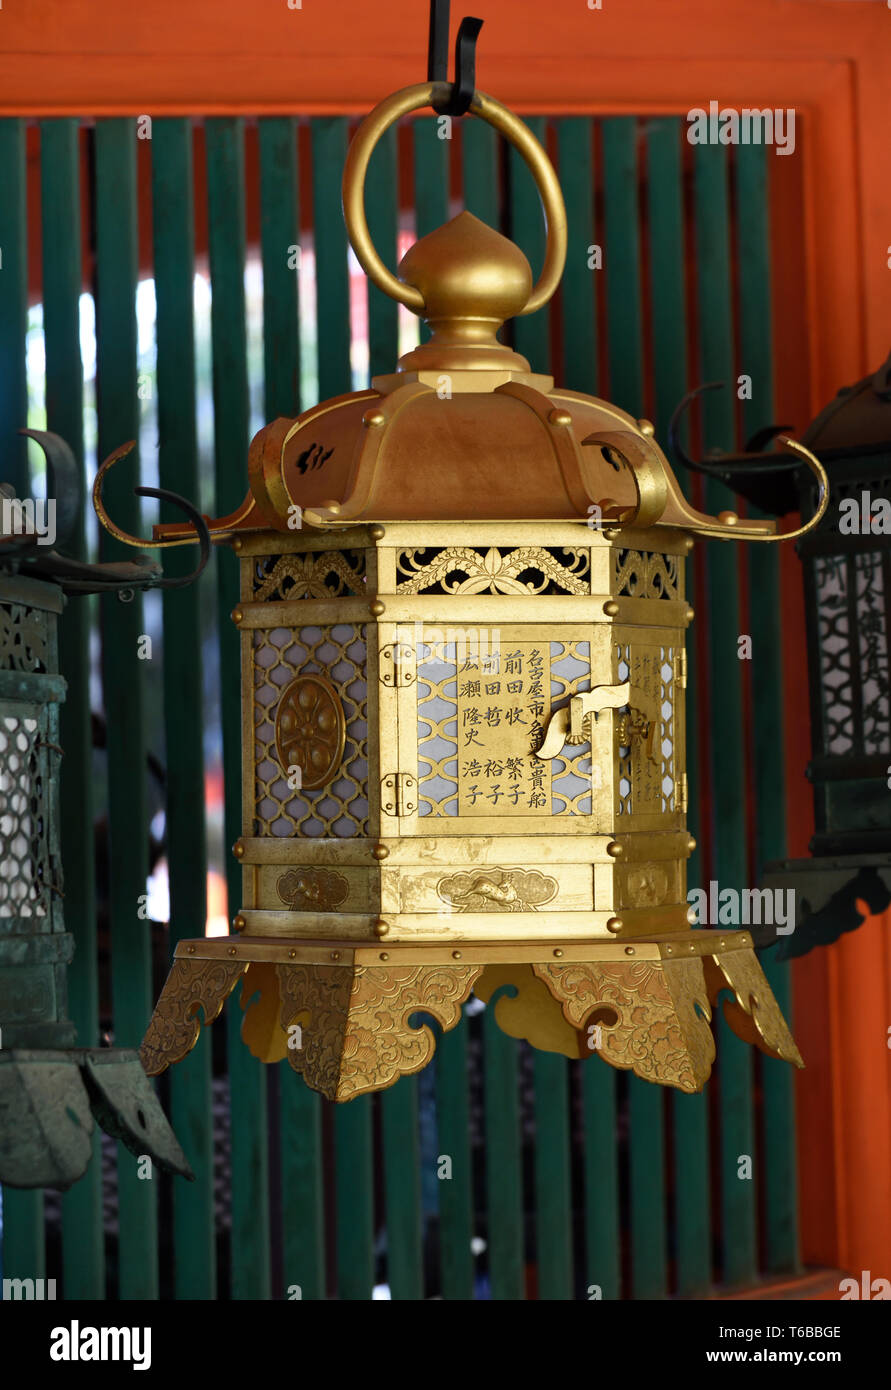 Kasugataisha Shrine Nara Japan - Stock Image